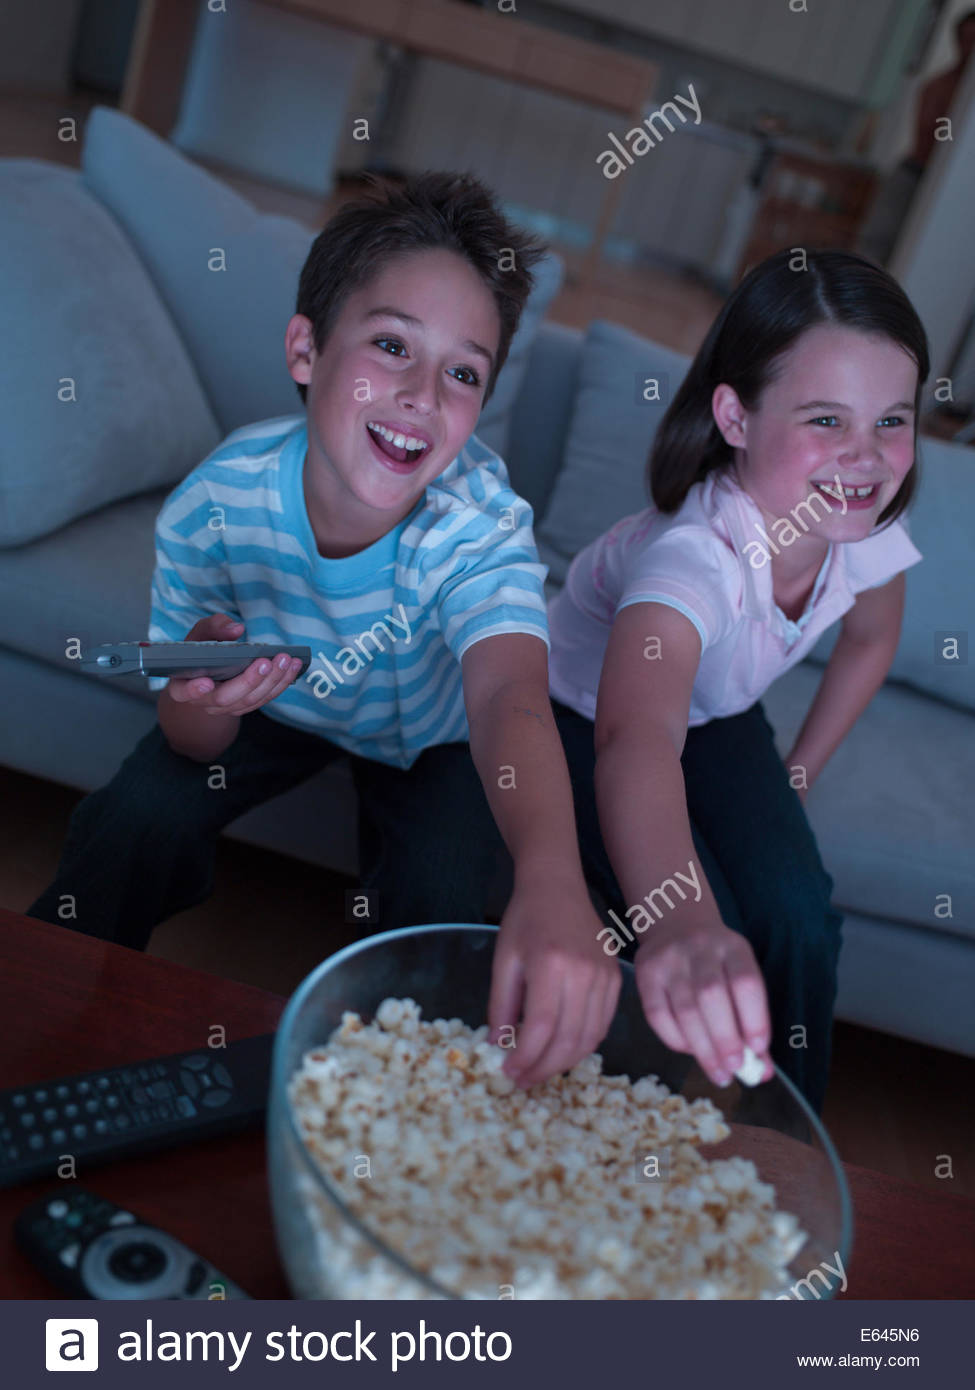 Boy and girl eating popcorn and watching TV Photo Stock